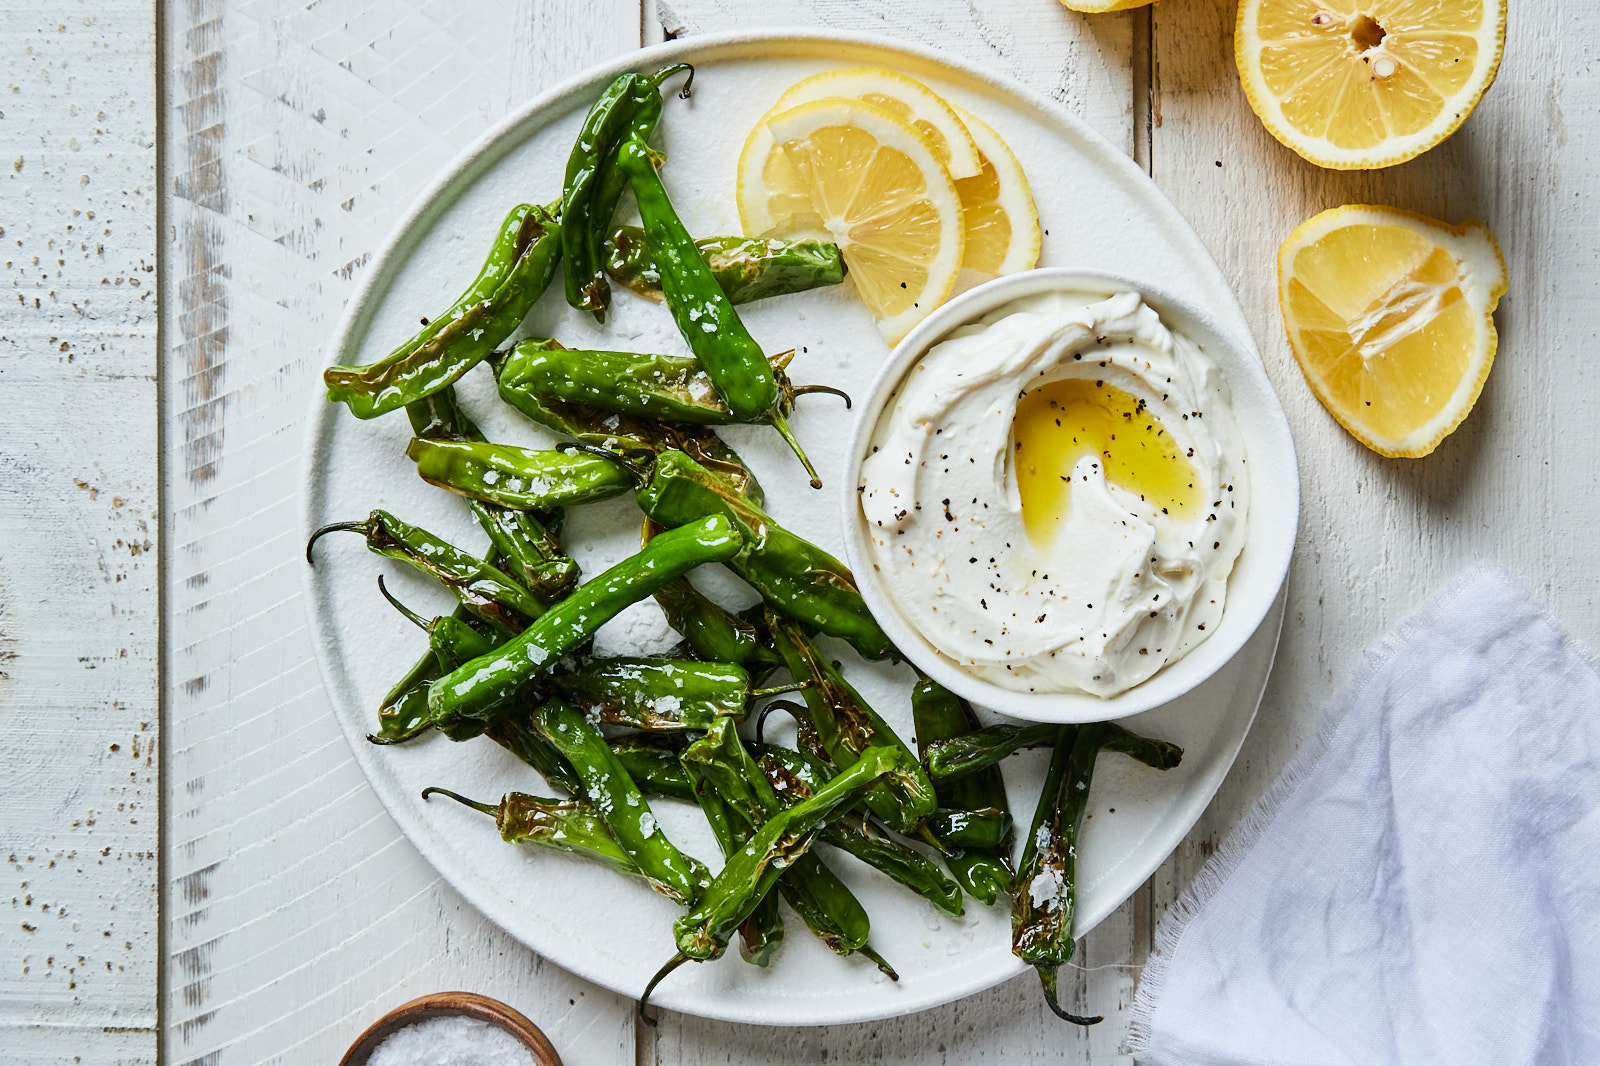 Blistered Shishito Peppers With a Lemony Whipped Goat Cheese Dip